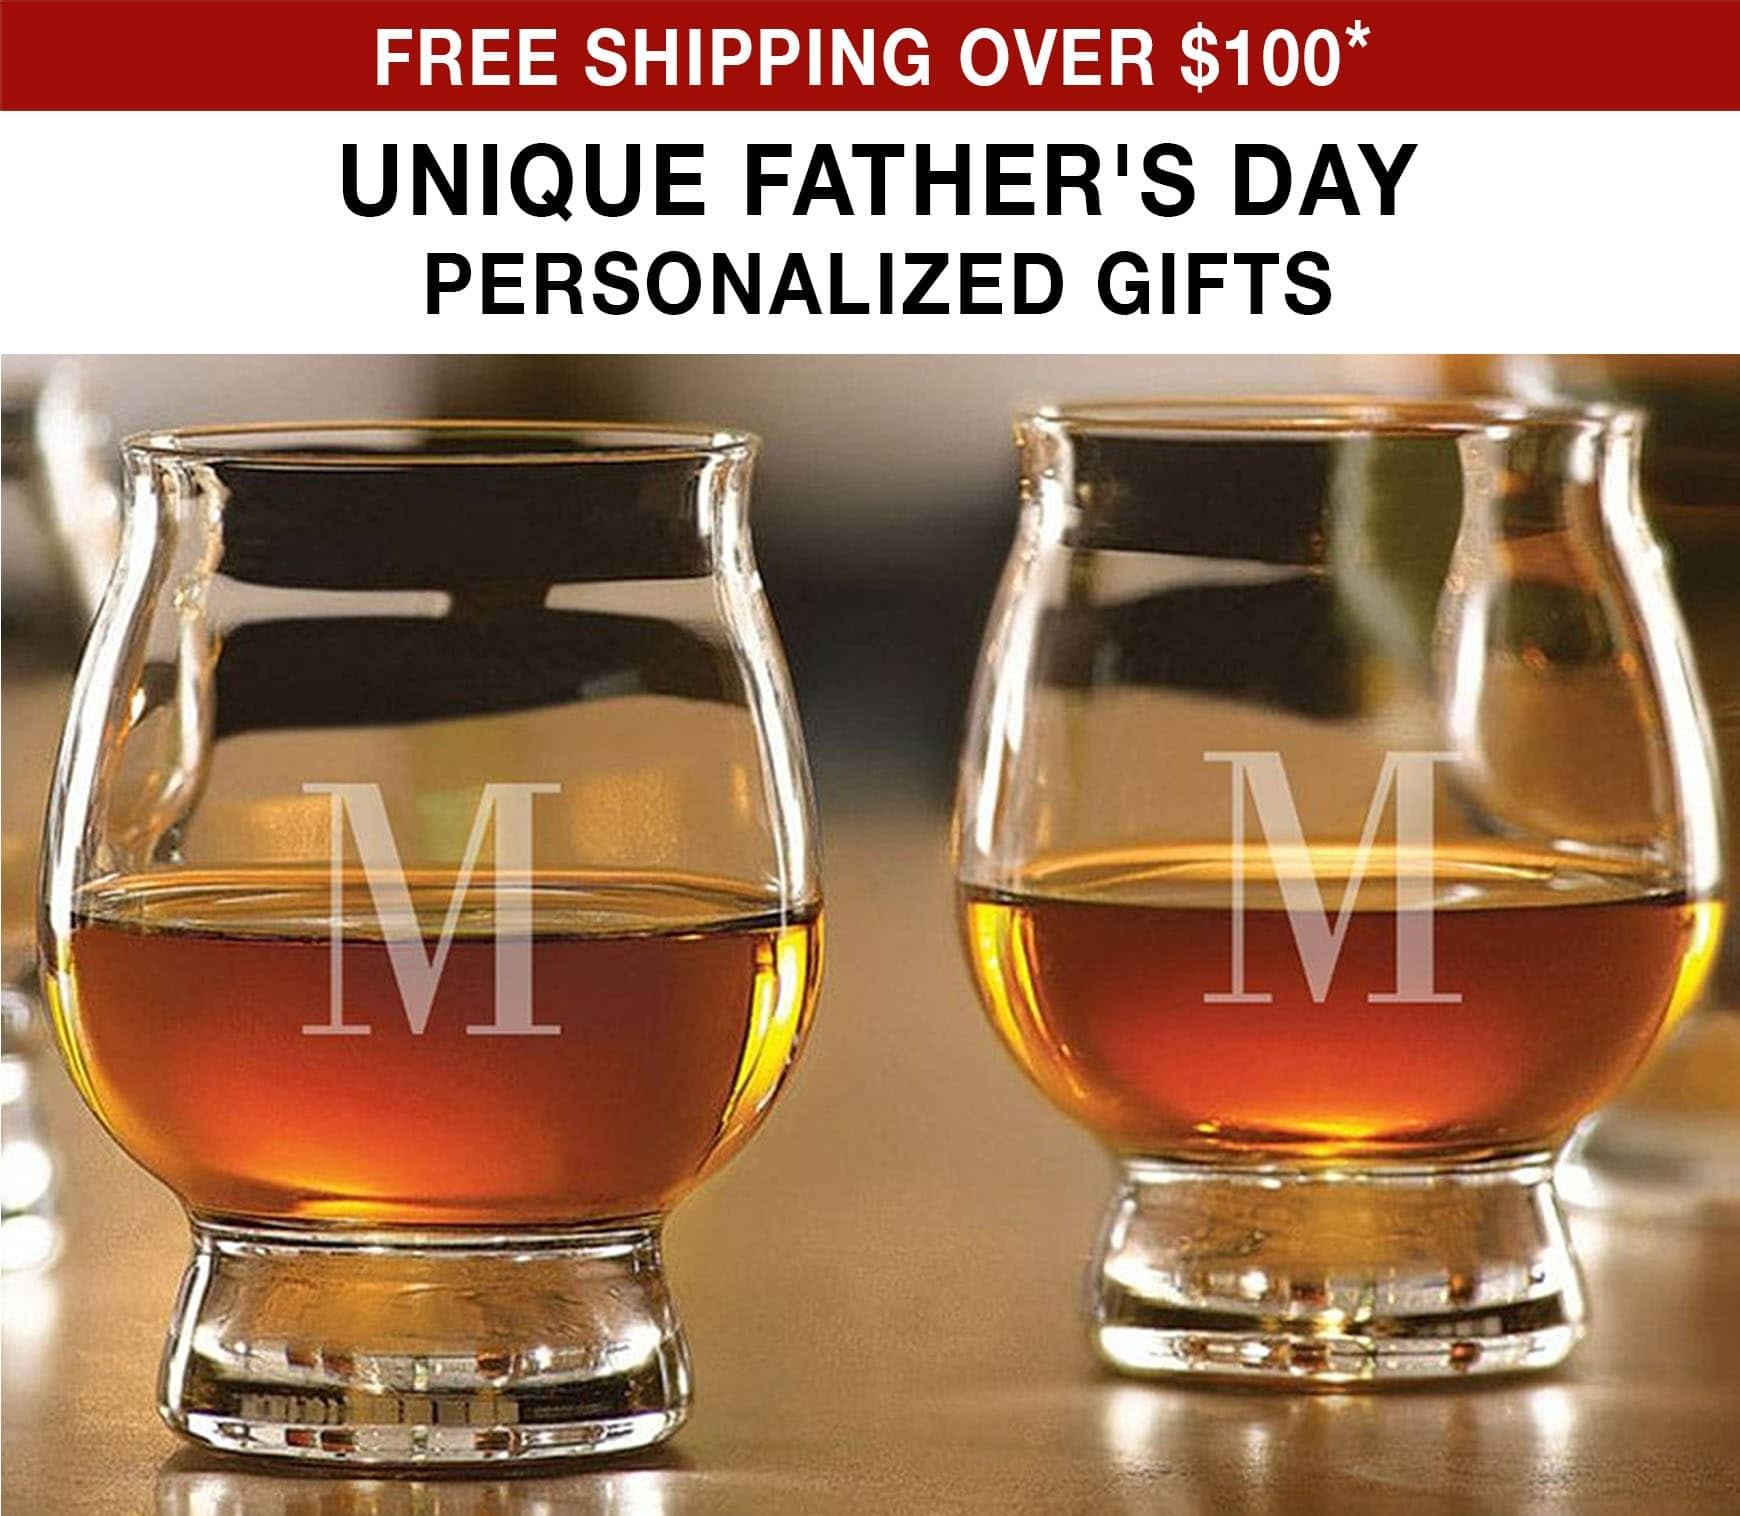 Unique Father's Day Personalized Gifts - Free Shipping Over $100* Use Code FS21W